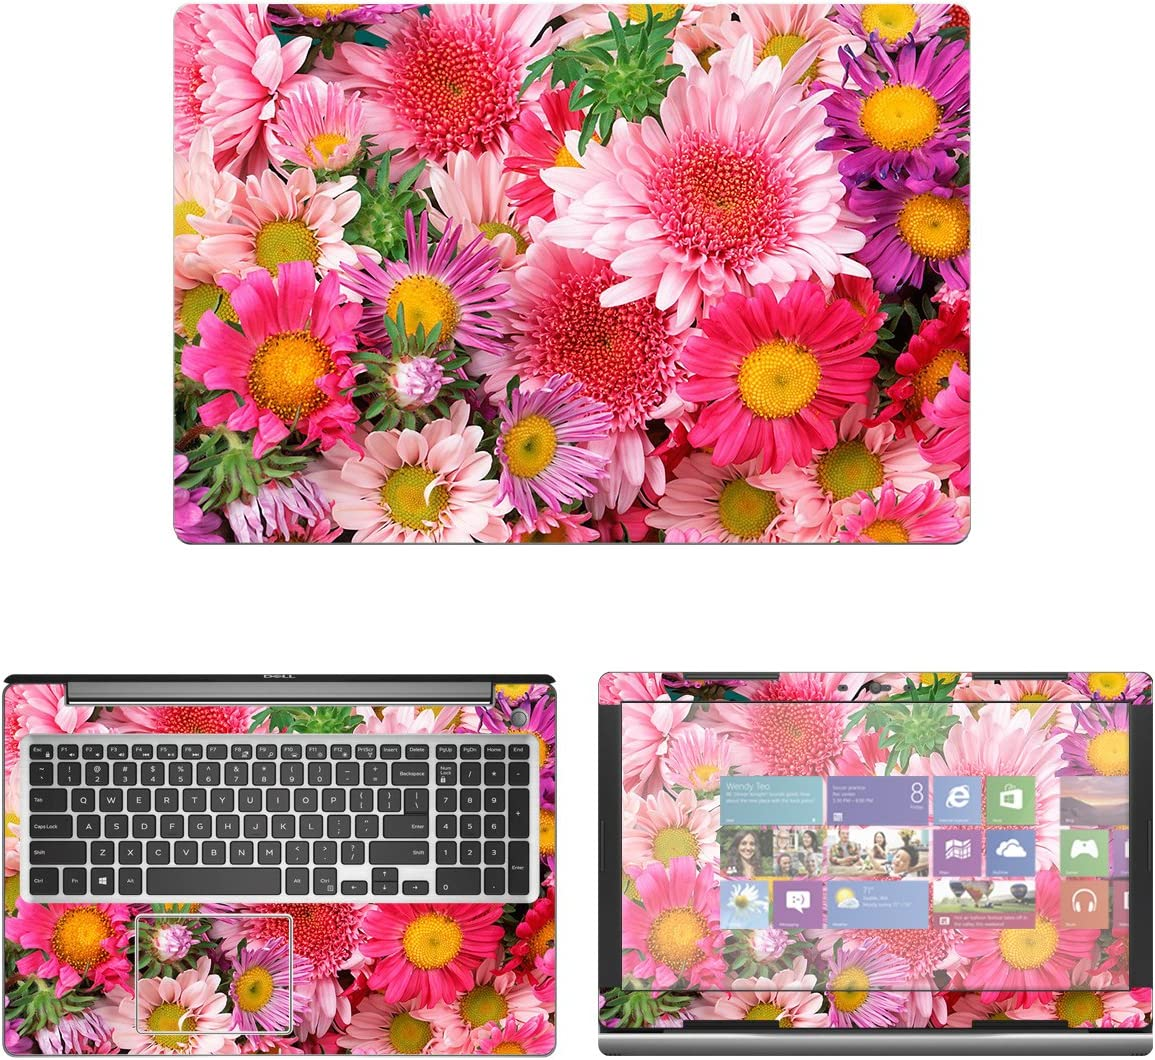 "decalrus - Protective Decal Floral Skin Sticker for Dell Inspiron 15 i5570 / 5570 (15.6"" Screen) case Cover wrap DEinspironi5570-211"